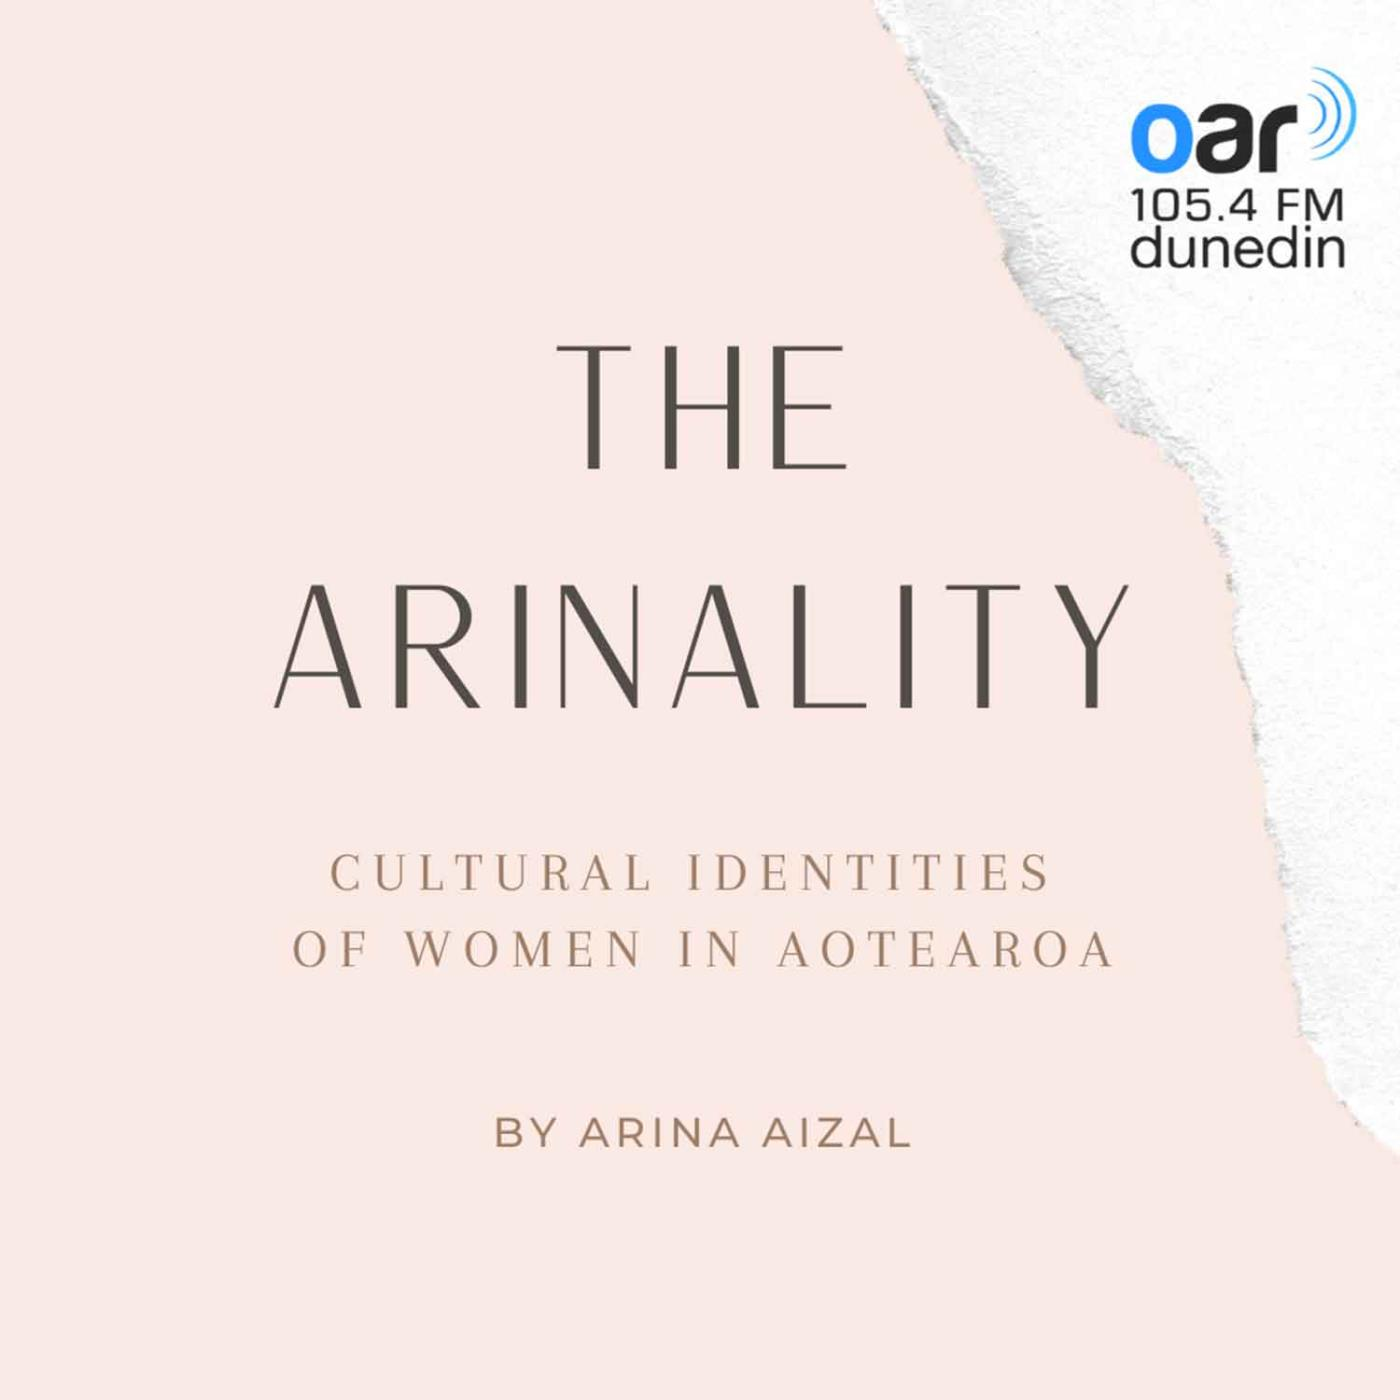 The Arinality